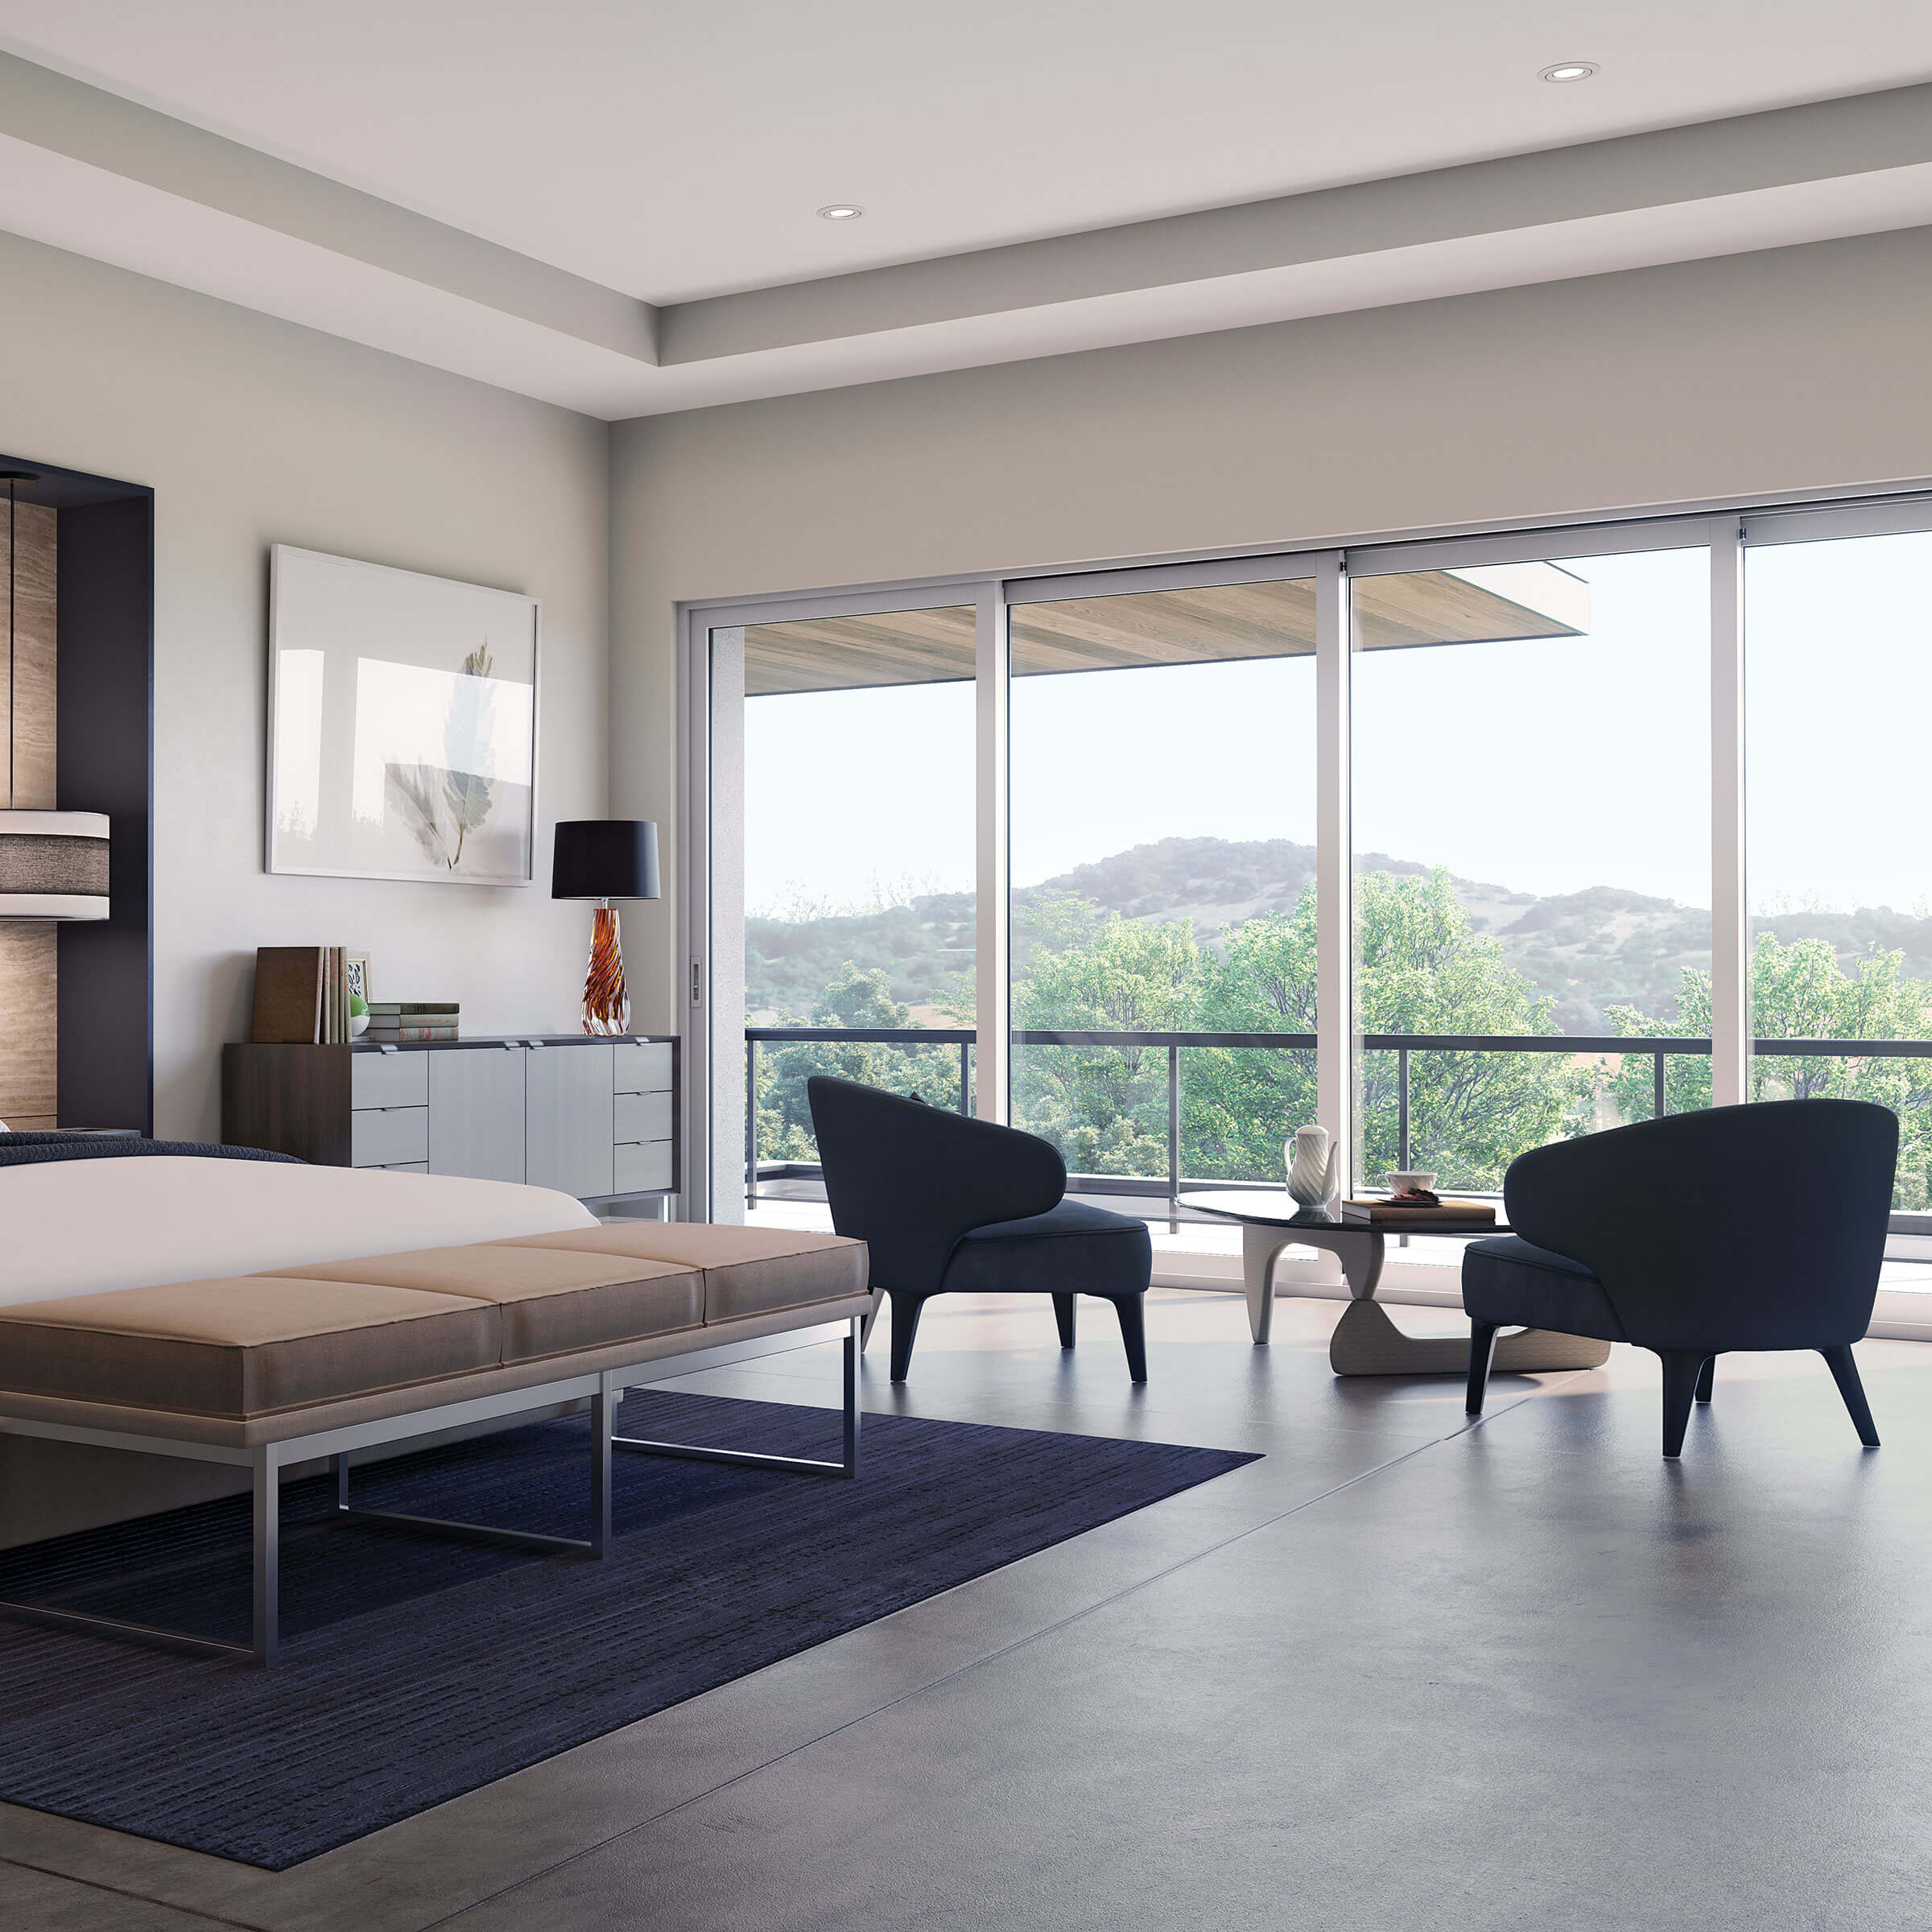 Modern Bedroom With Signature Modern Multi-Slide Door